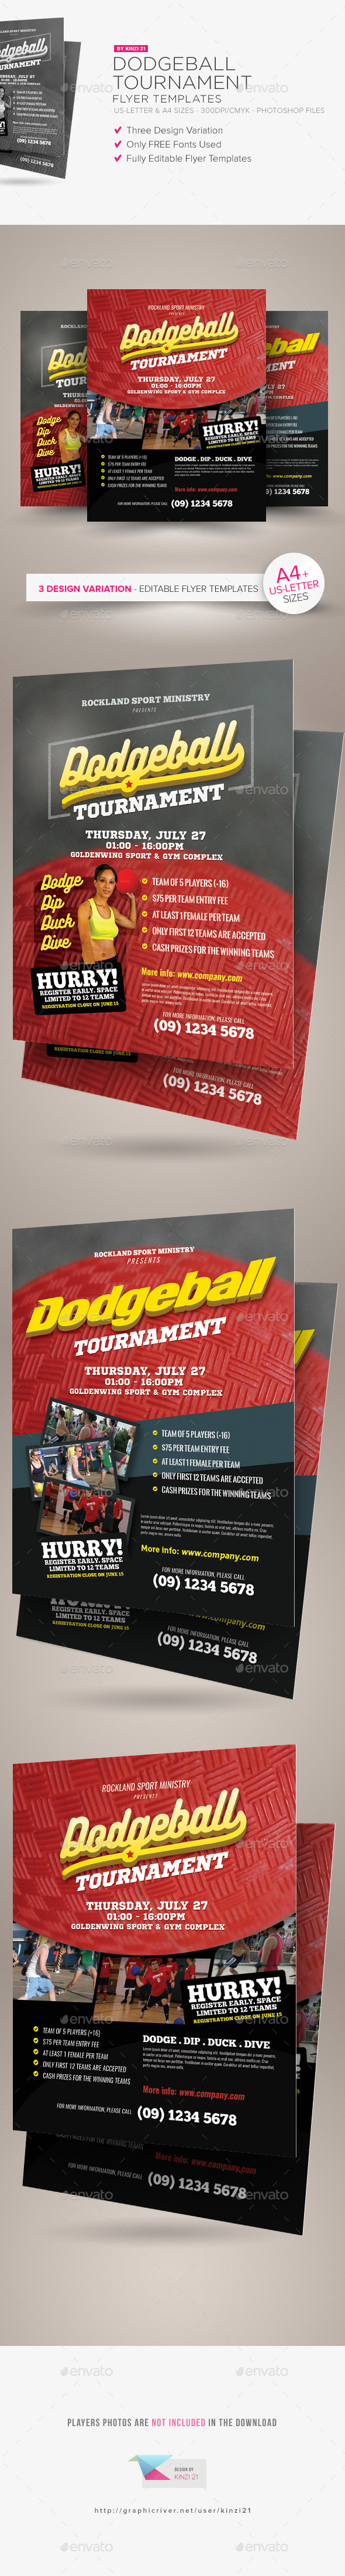 Dodgeball Tournament Flyer Templates - Sports Events